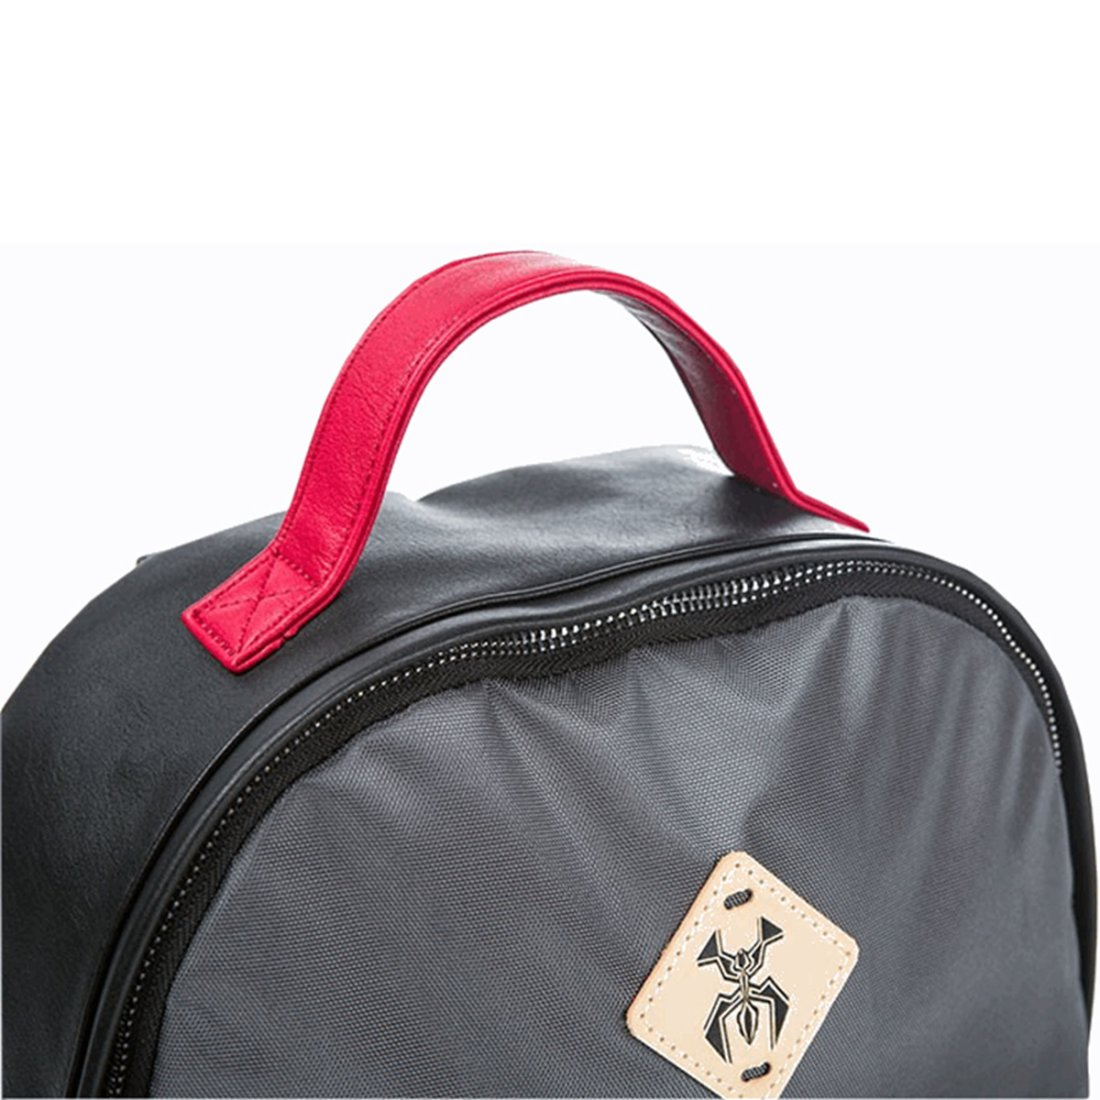 Sac FOX Sidecar Kick Stand Dark Red UNICA R9suYWhfe